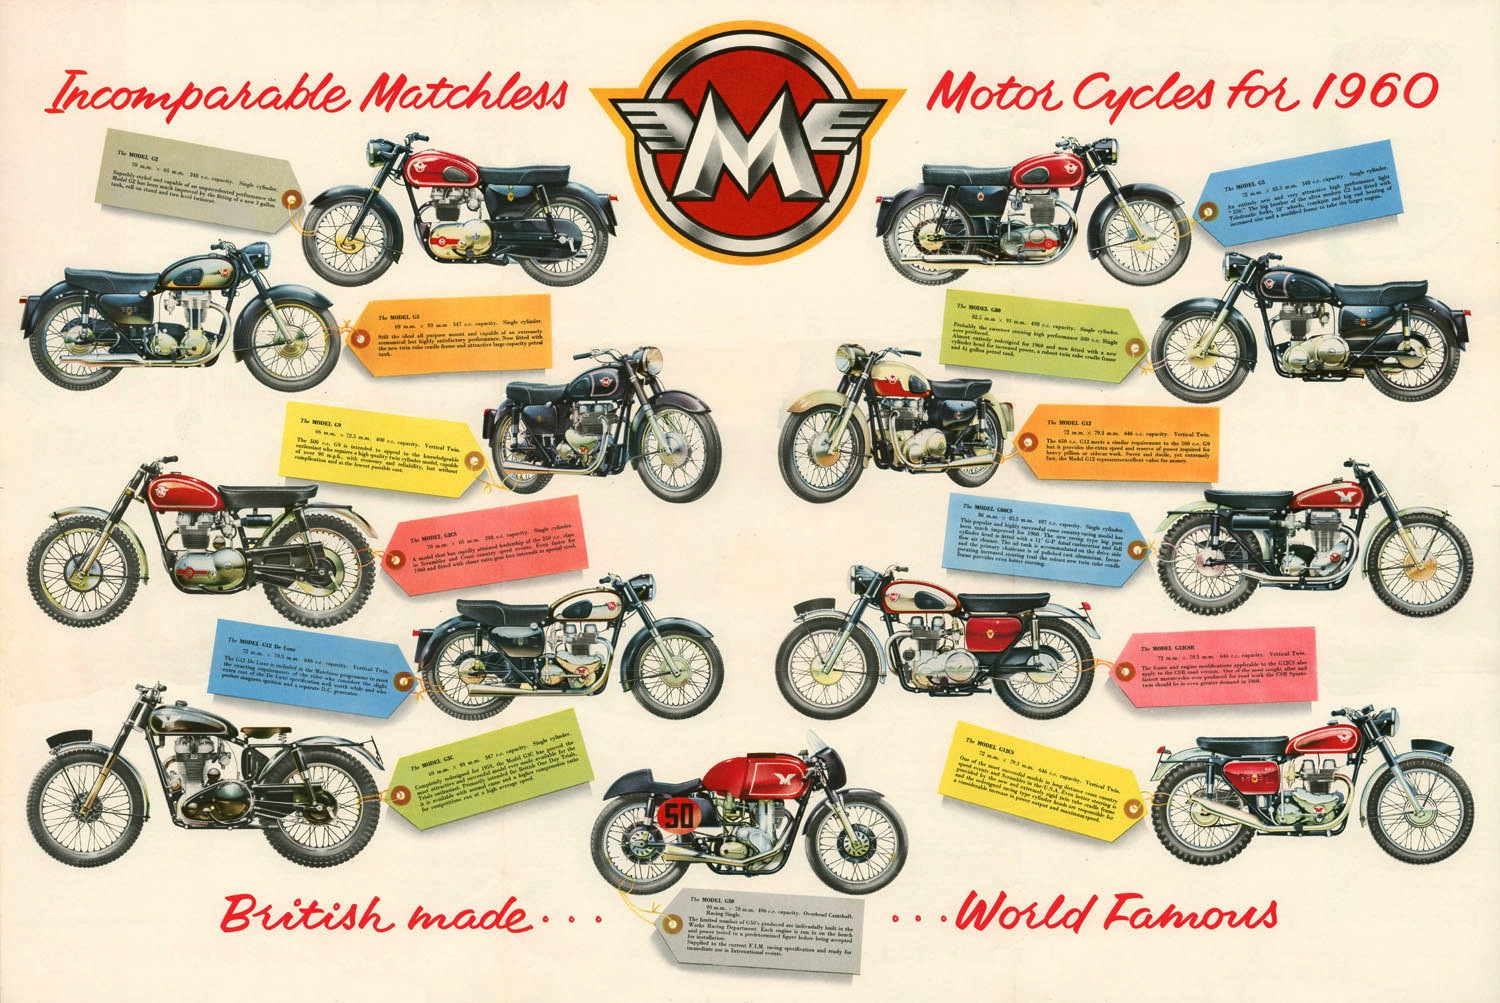 Racing Caf U00e8  Incomparable Matchless Motor Cycles For 1960